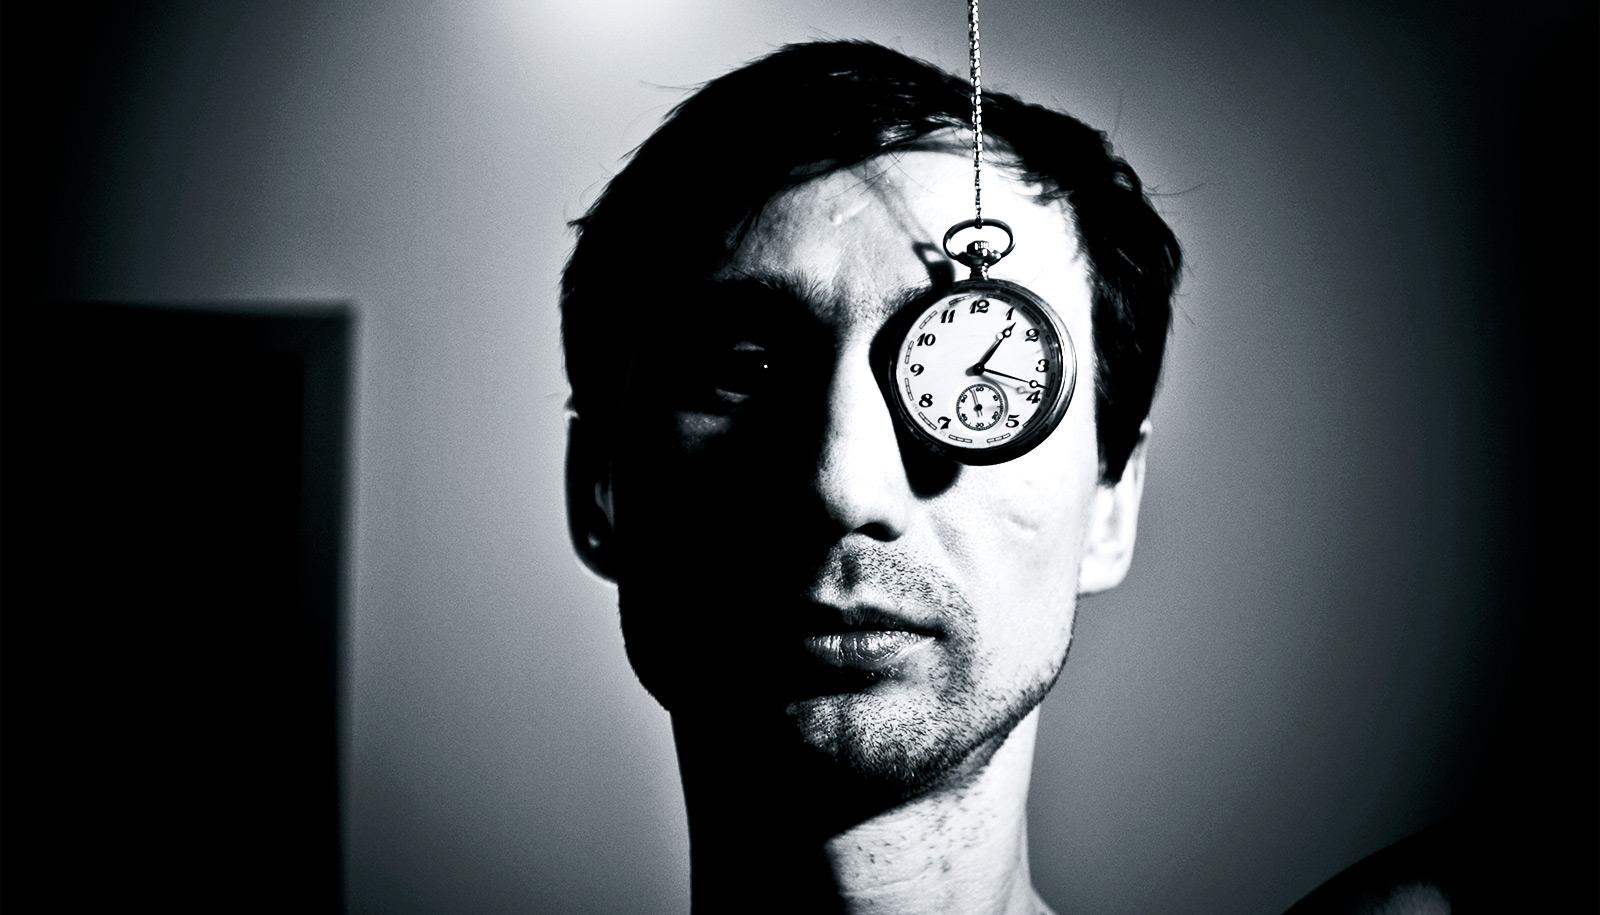 A man's face is half-covered in shadow as a pocket watch hangs down over his left eye